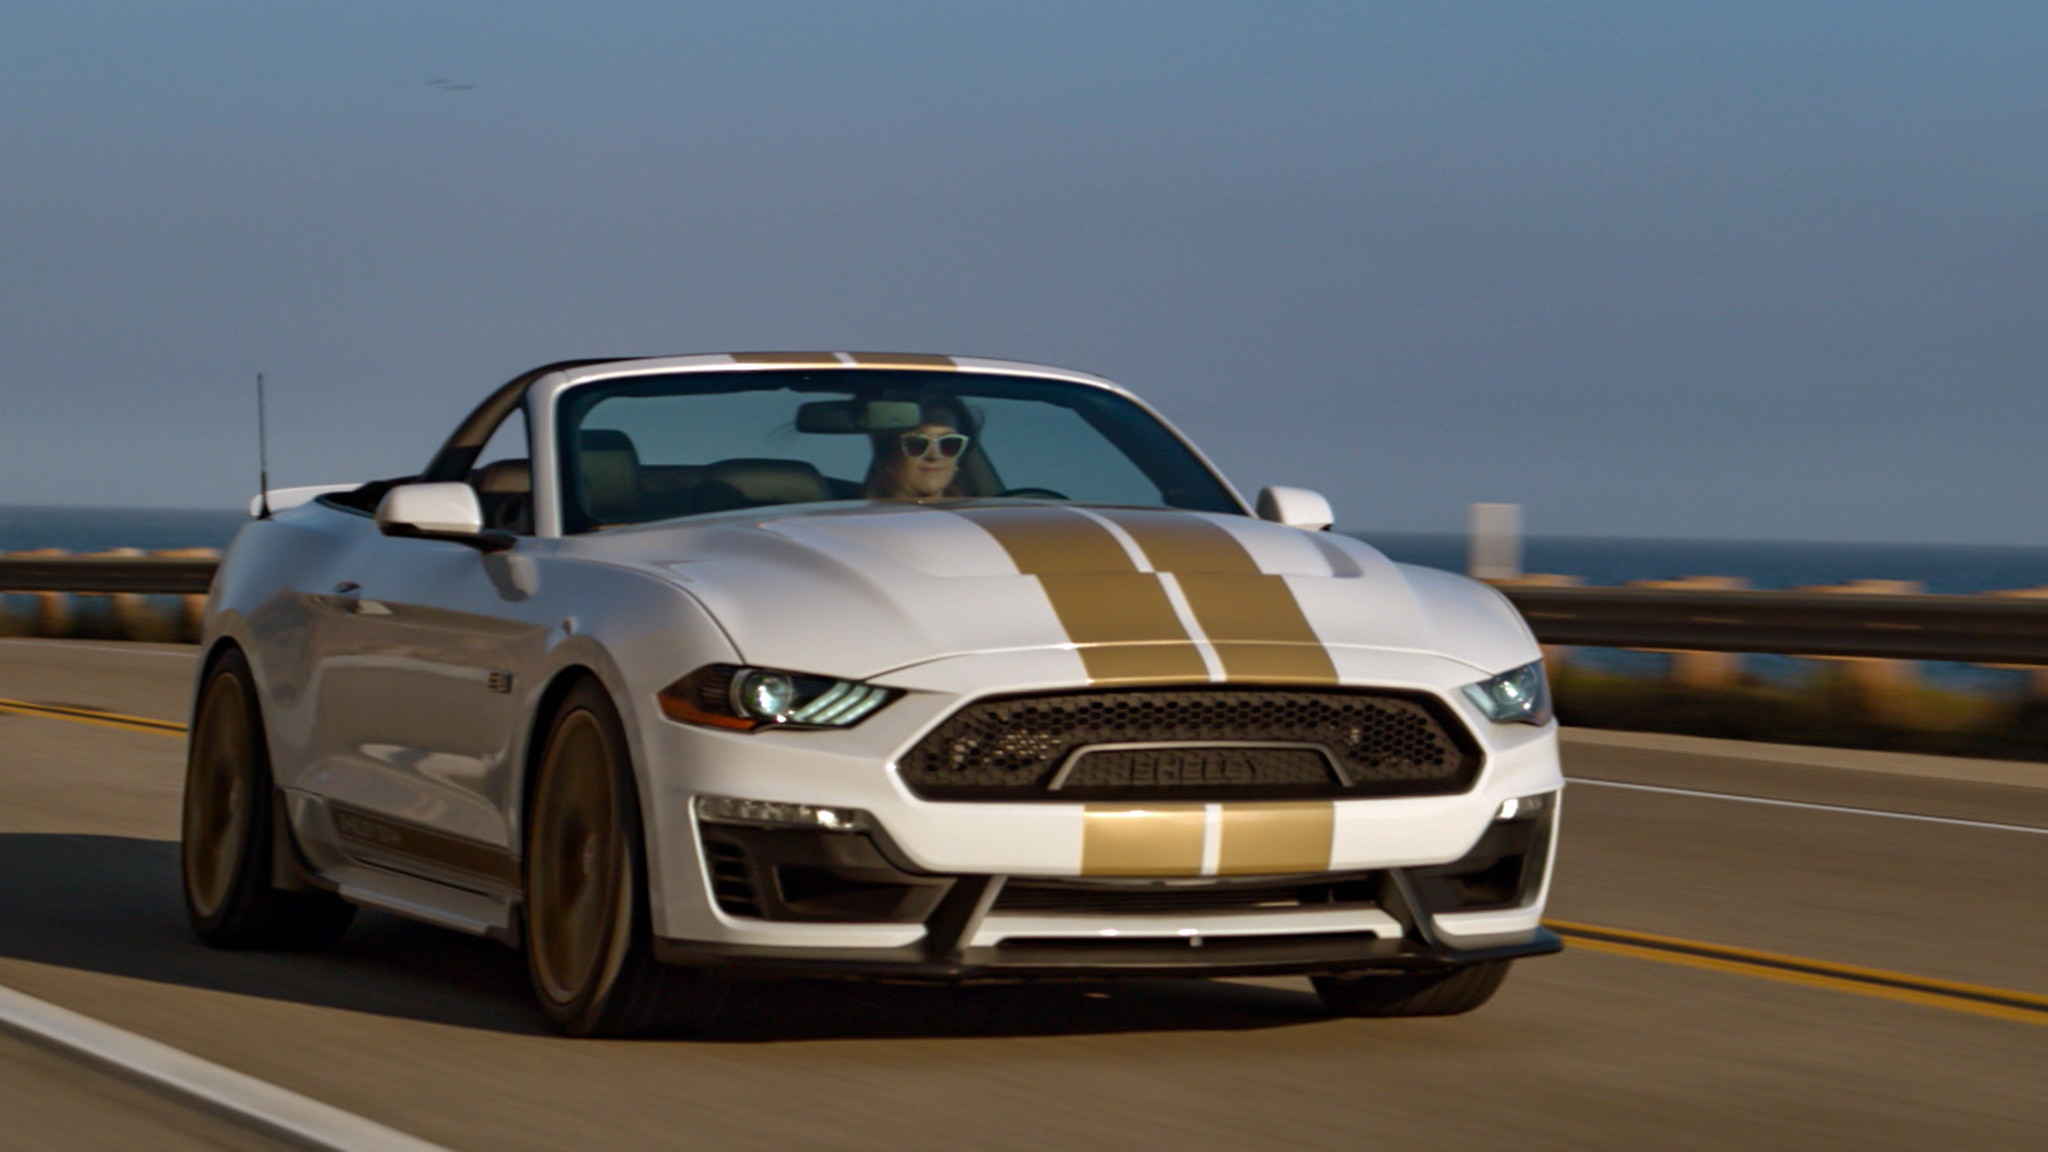 2019 shelby gt ford mustang makes as much as 700 hp automobile magazine. Black Bedroom Furniture Sets. Home Design Ideas